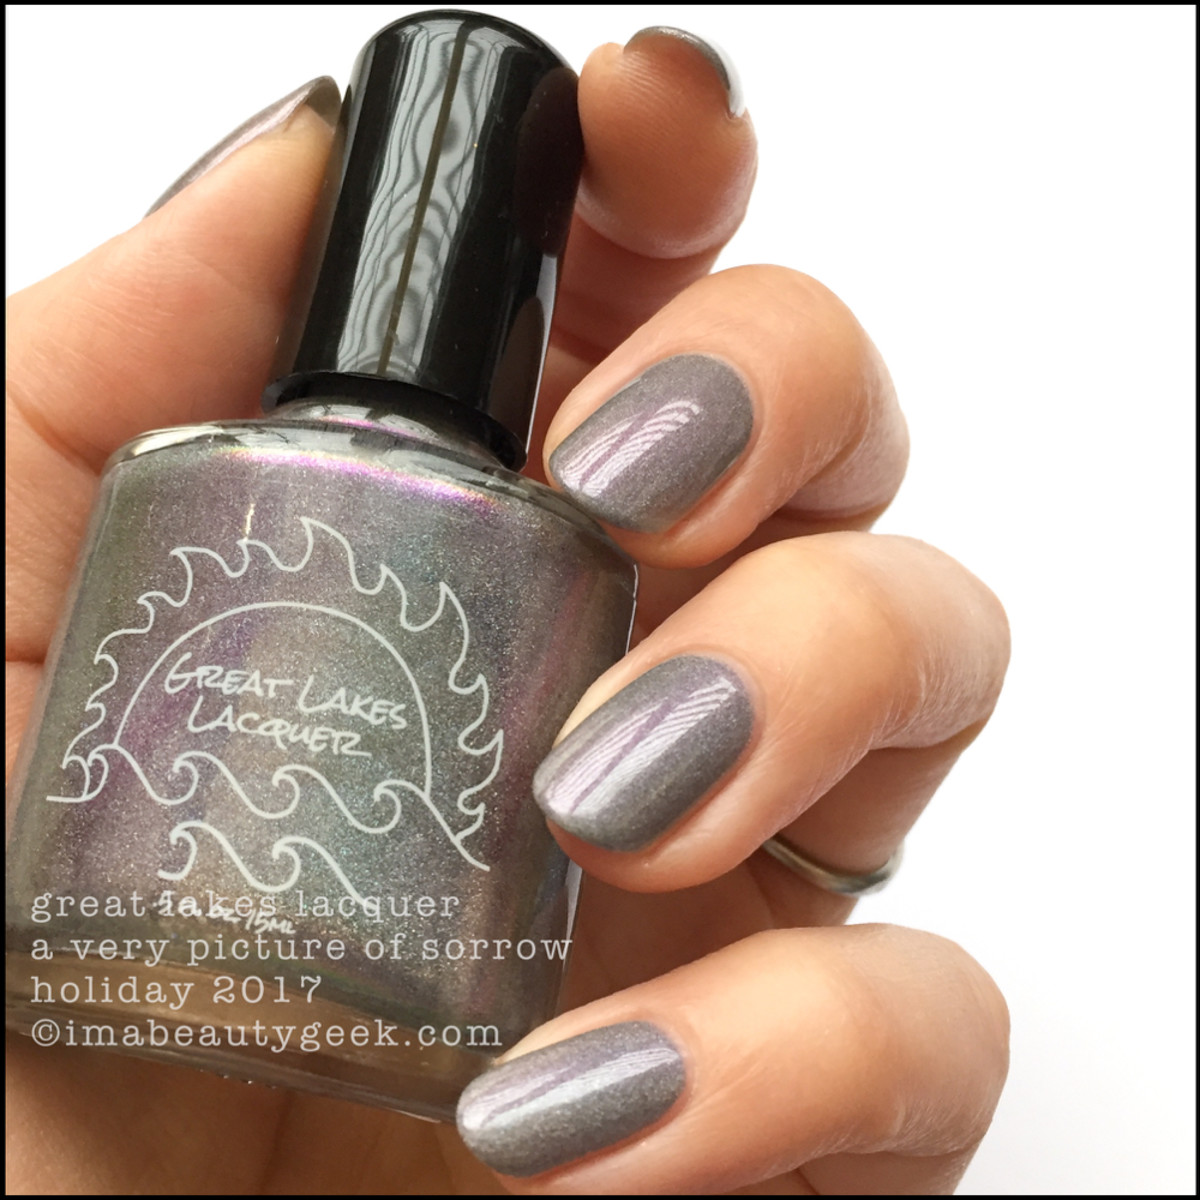 Great Lakes Lacquer A Very Picture of Sorrow 2 _ Great Lakes Lacquer Holiday 2017